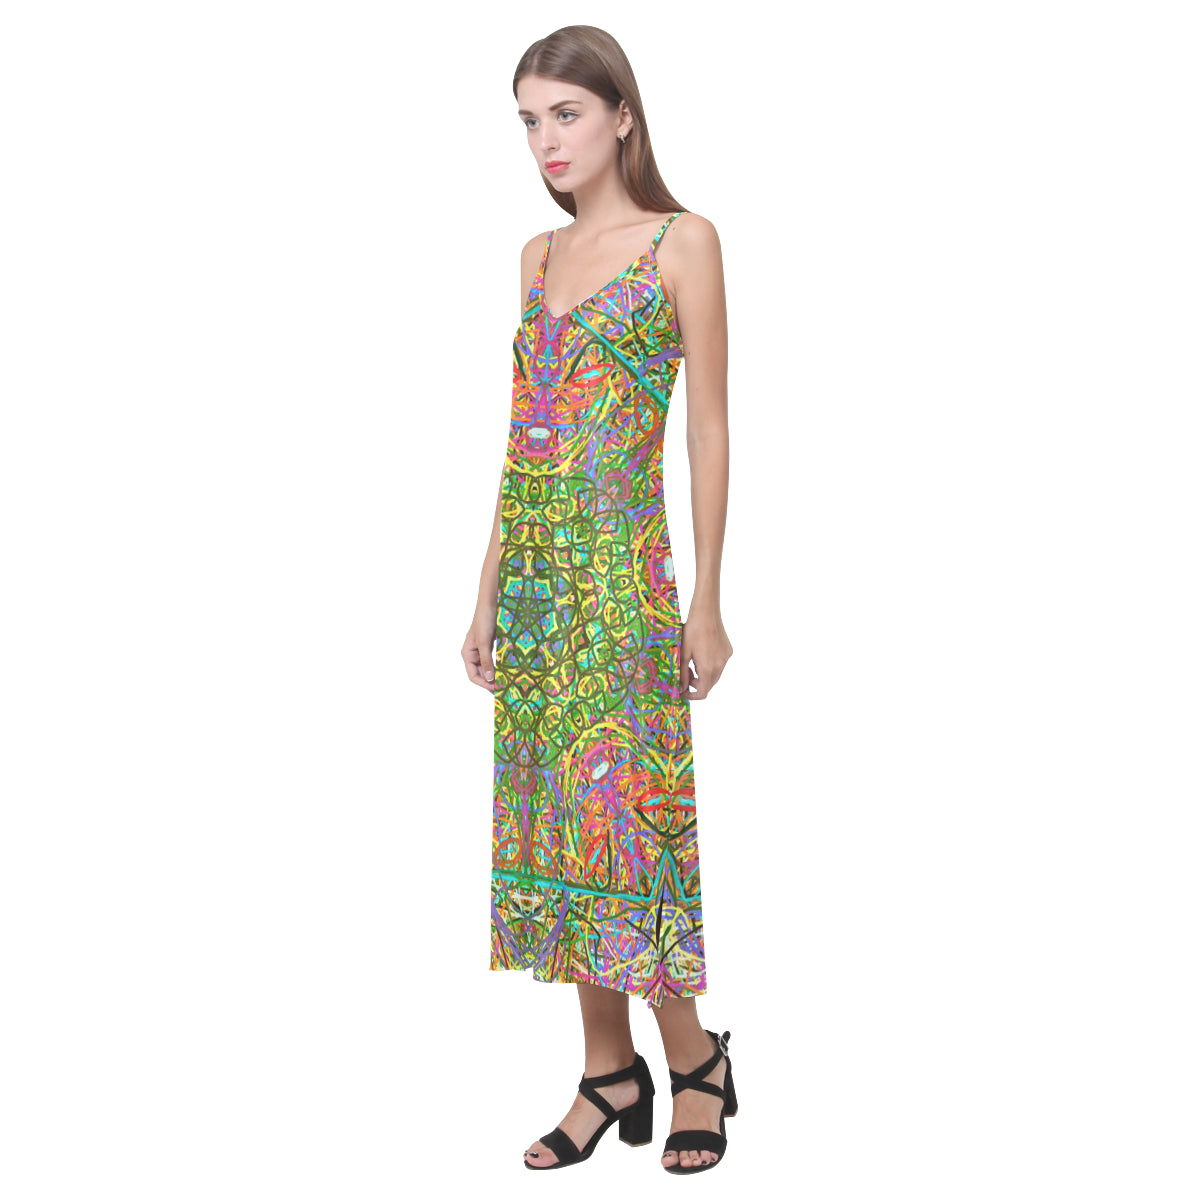 Thleudron Women's Mangshan V-Neck Open Fork Long Dress(Model D18) - Thleudron